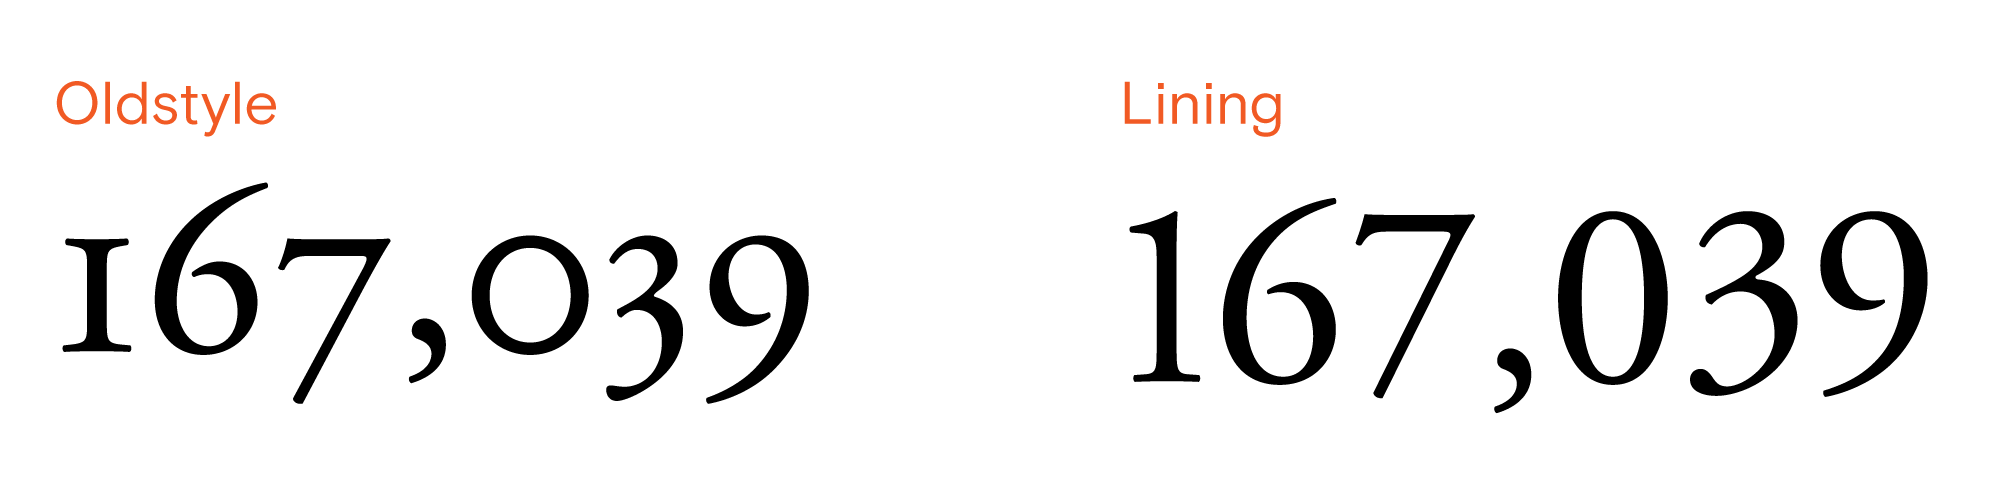 Oldstyle vs. lining figures